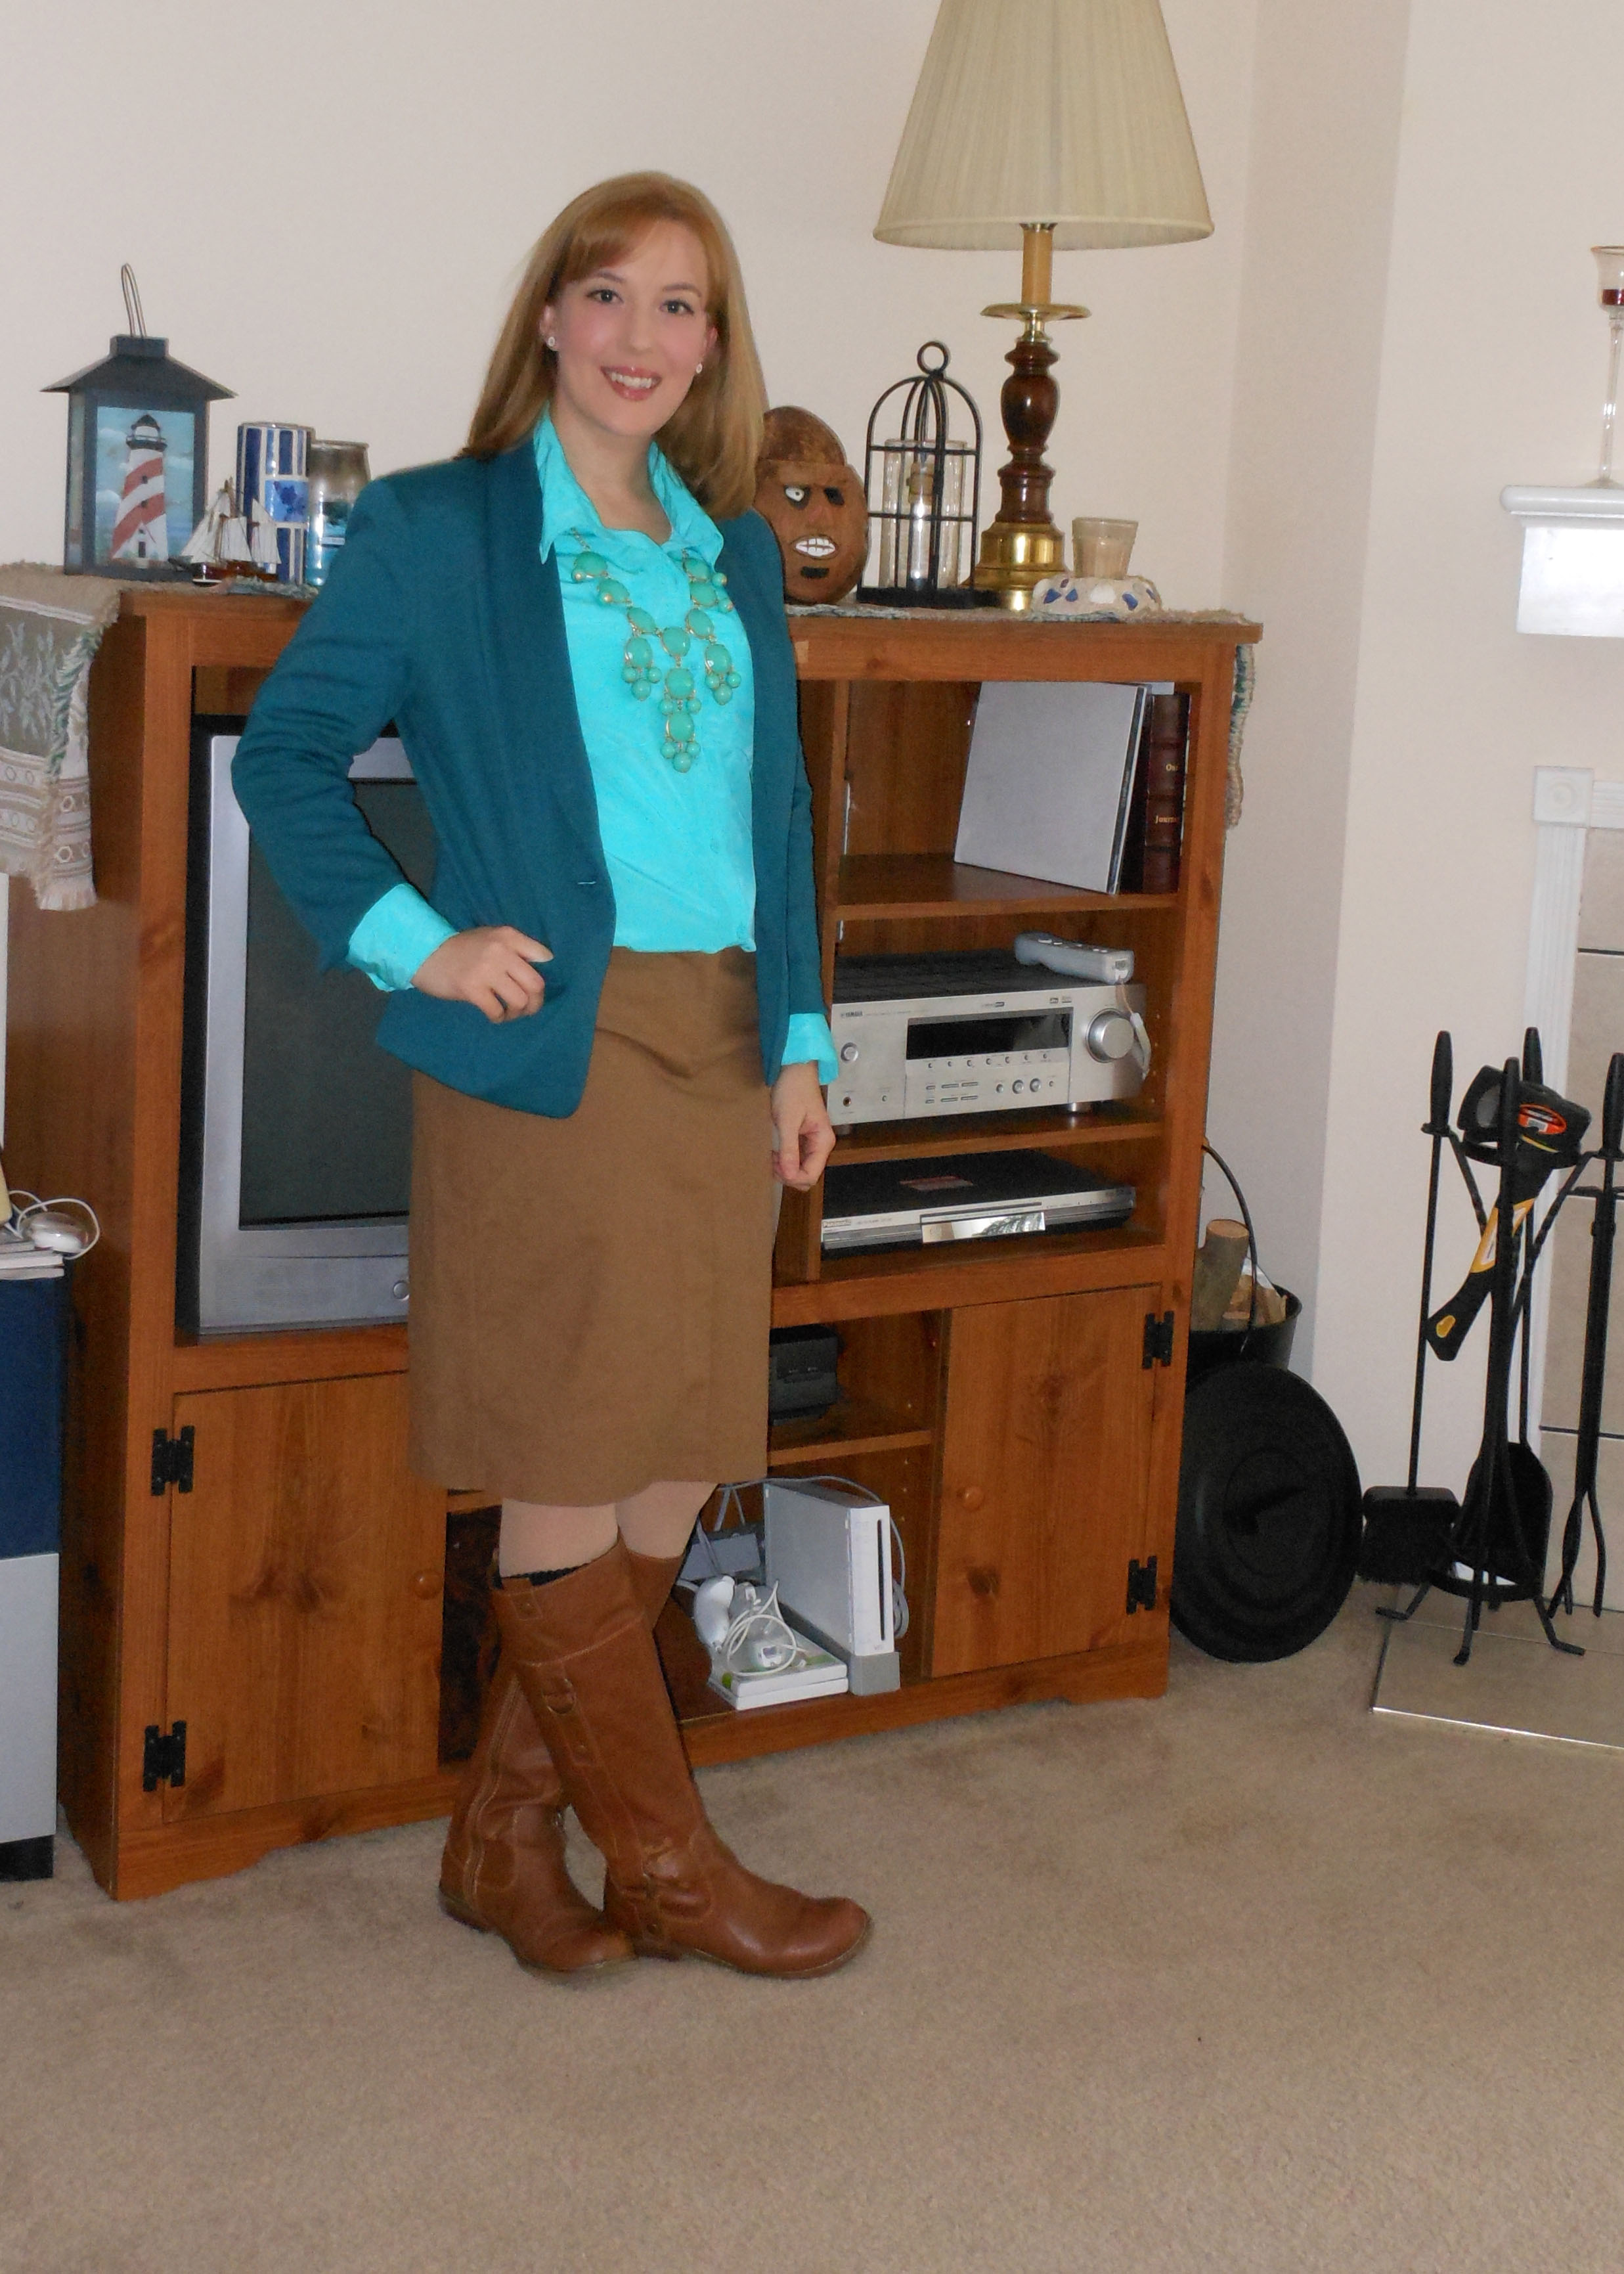 Teal blazer: Target. Daisy stud earrings: Target. Turquoise silky button up: Wal-Mart. Bubble necklace: online. Dark khaki skirt: (thrifted.) Nude tights: Wal-Mart. Brown boots: Old Navy. Rose gold watch: Target.